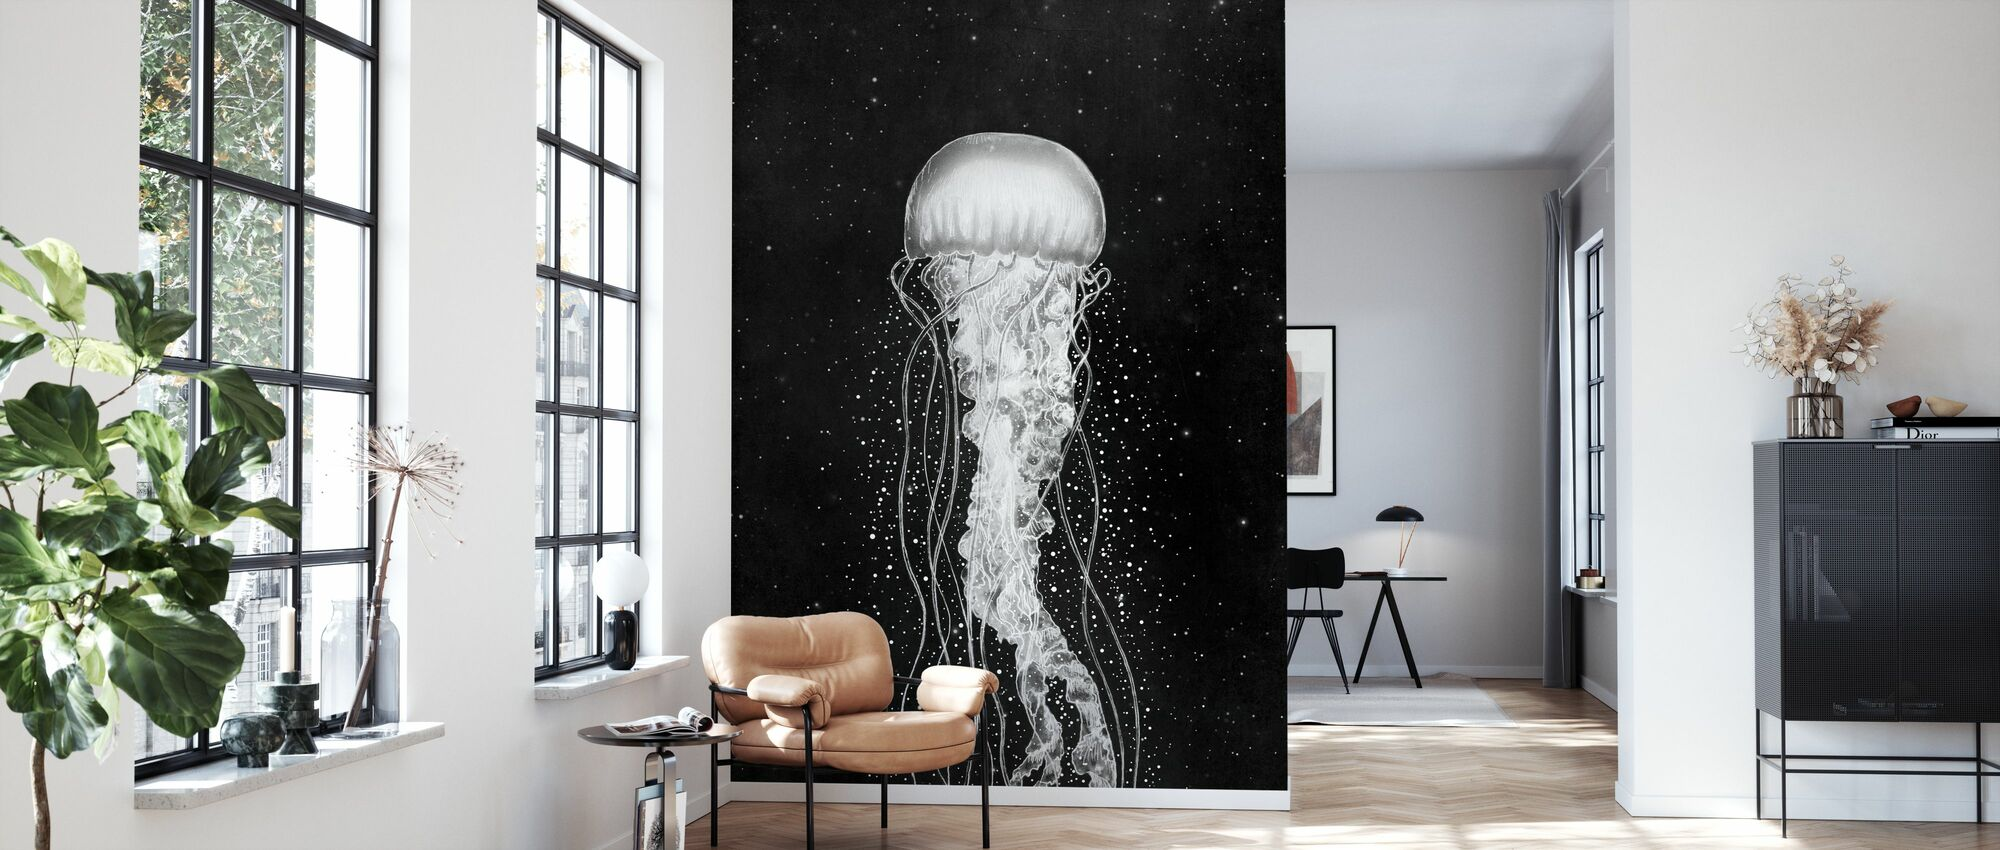 Space Jelly - Wallpaper - Living Room